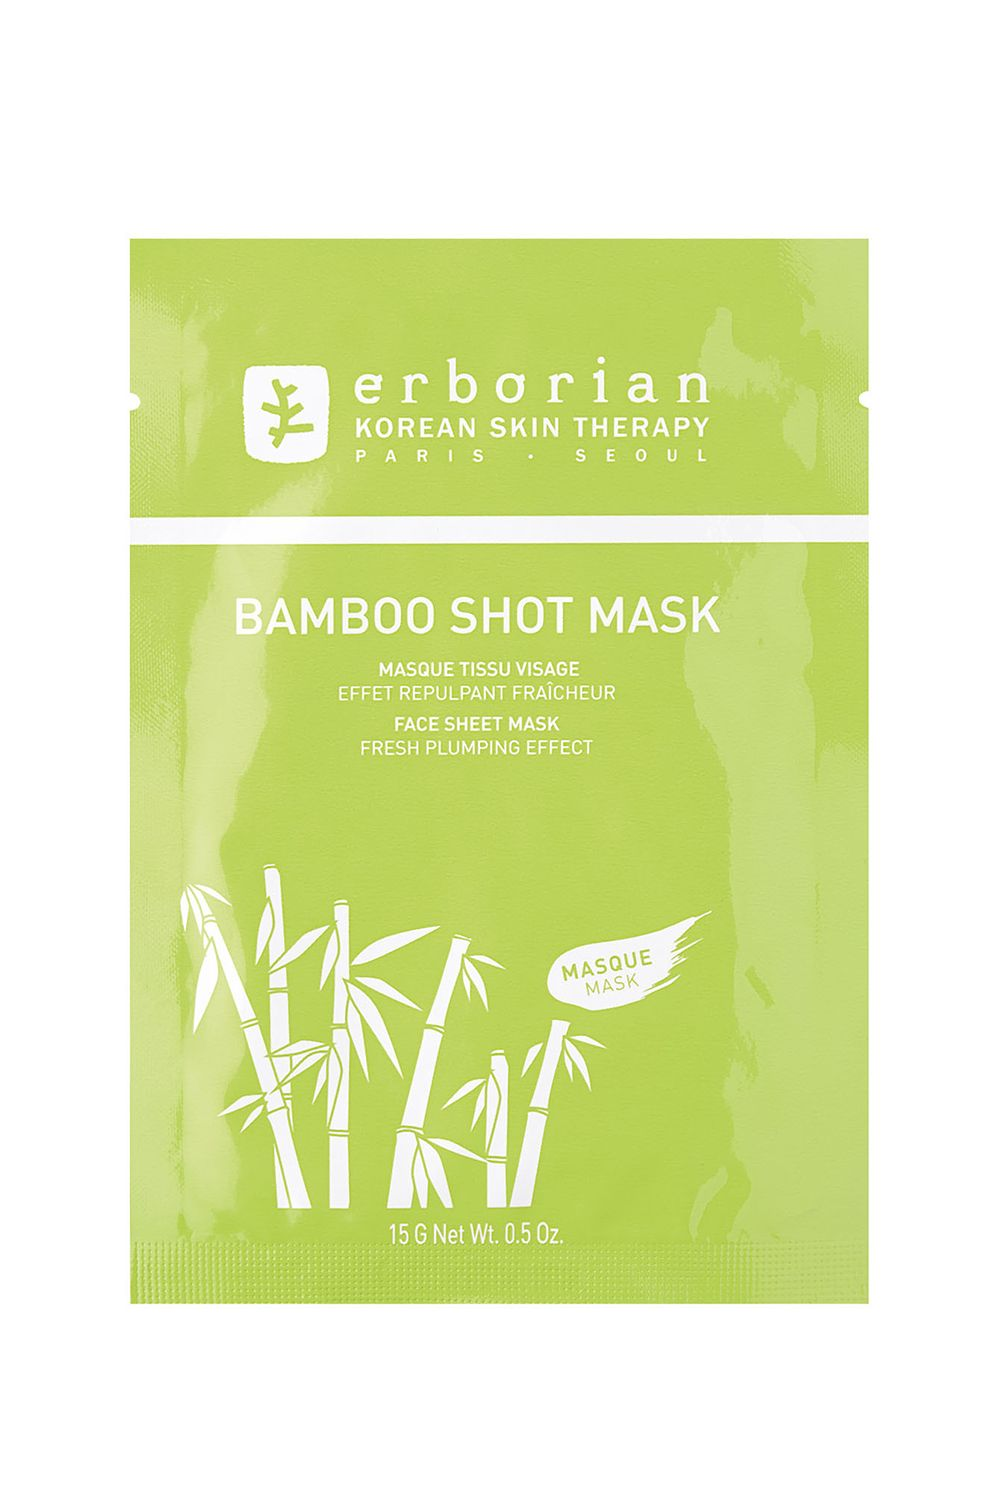 Erborian Bamboo Shot Mask Erborian Bamboo Shot Mask, $5 SHOP IT Tight, parched skin is not cute, and definitely not a comfortable feeling. Treat your skin to a hefty dose of bamboo, which is praised for its skin-plumping powers.